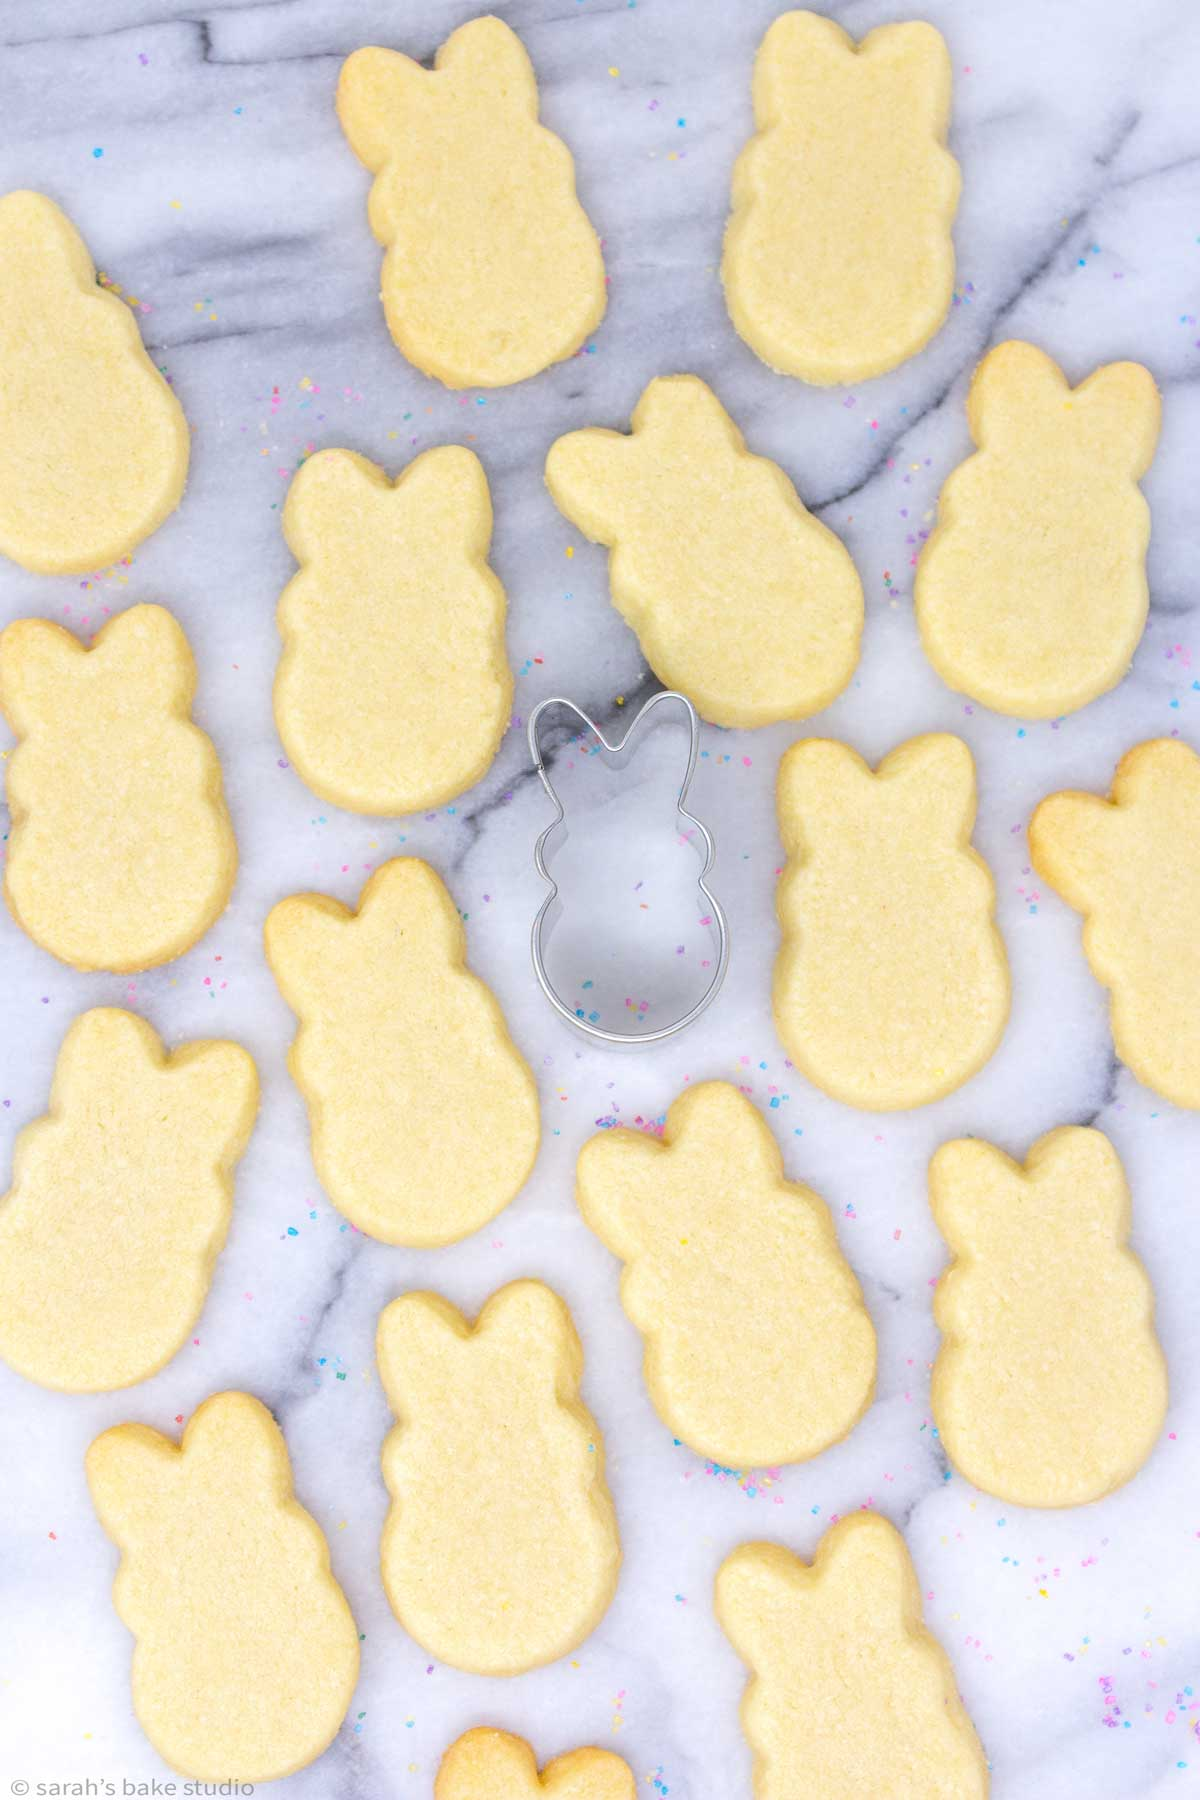 PEEPS Easter Bunny Sugar Cookies before being frosted with the PEEPS cookie cutter.